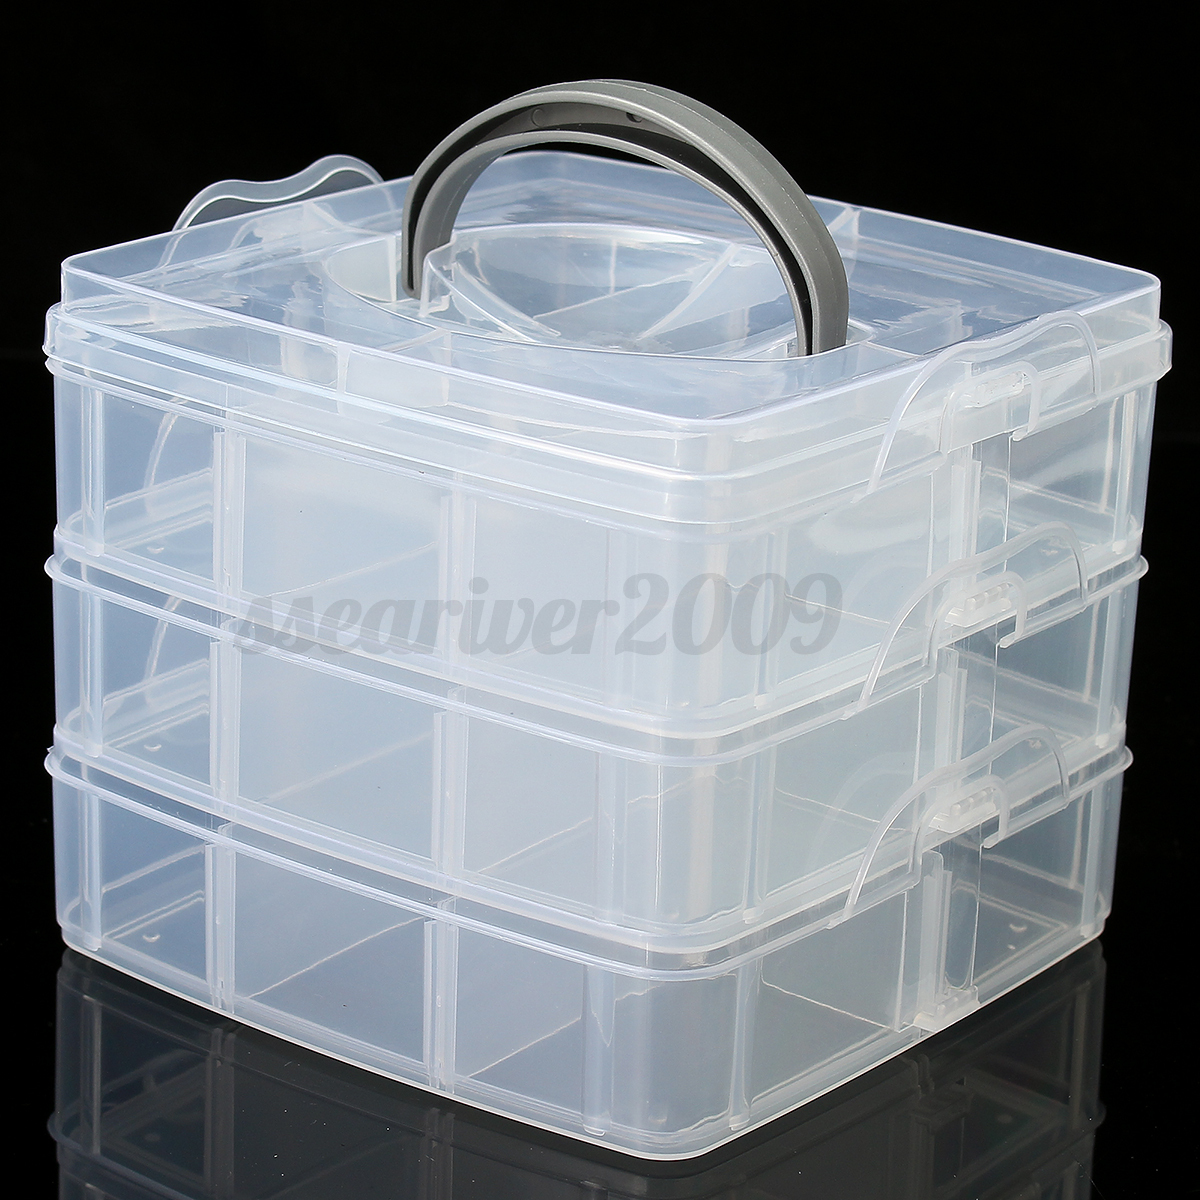 Compartment box clear plastic storage organiser tool case for Craft storage boxes plastic